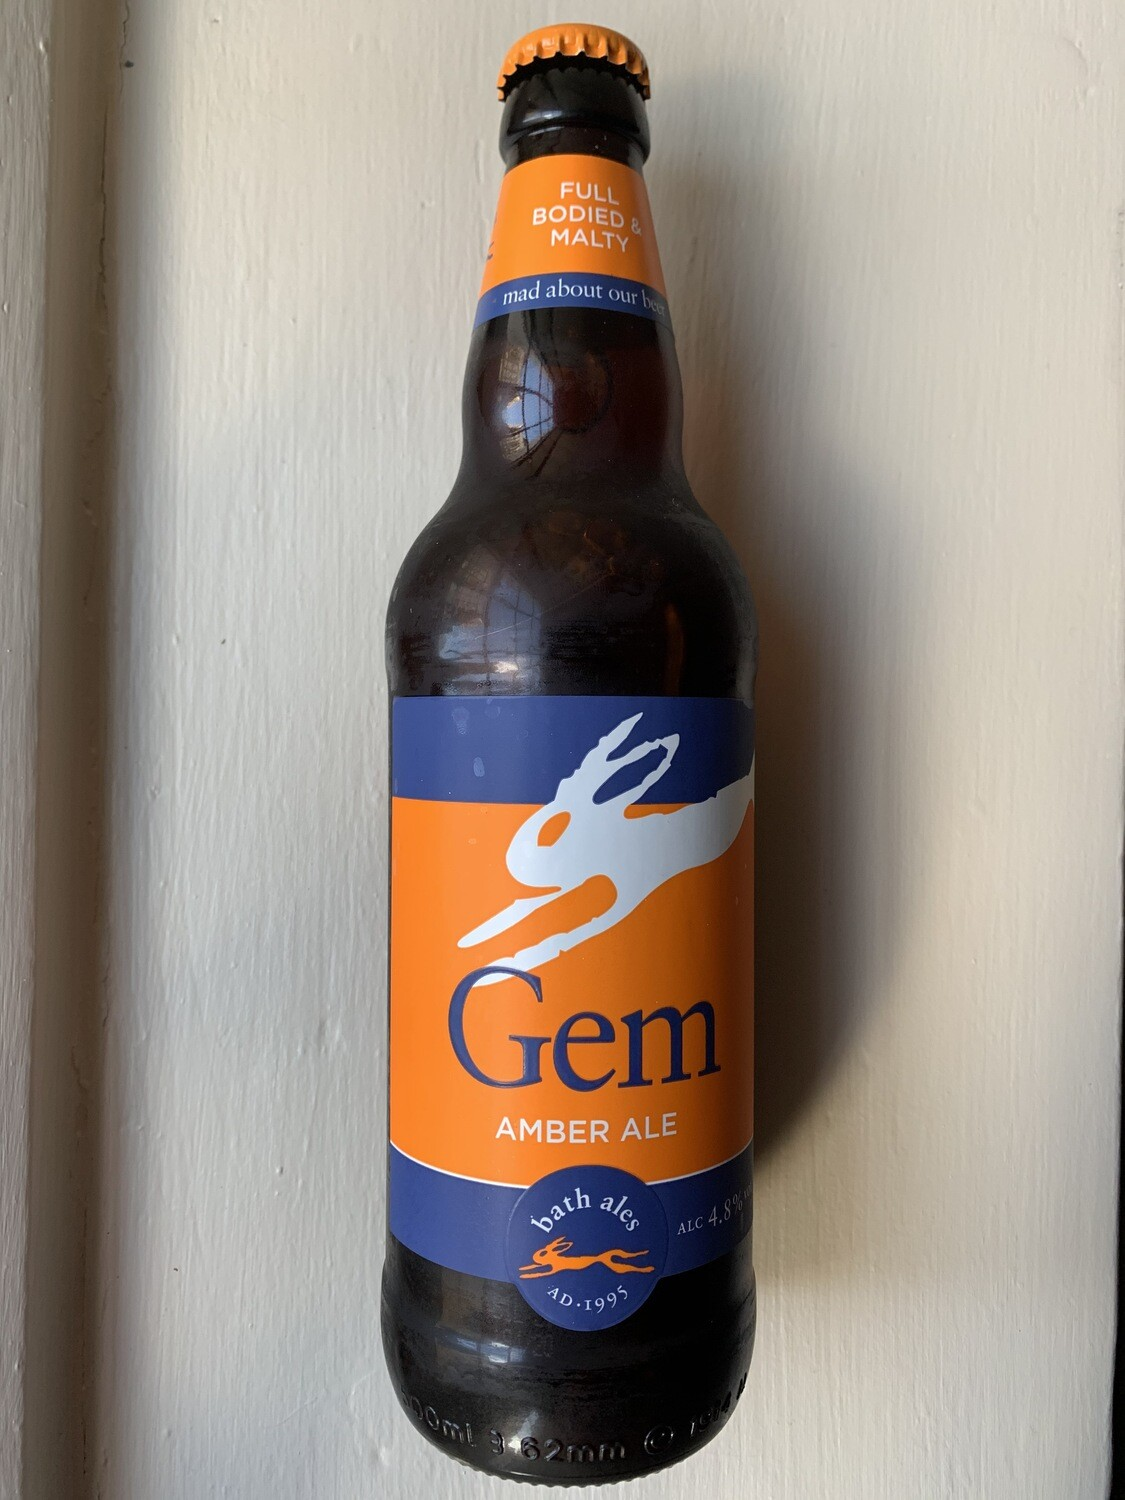 Bath Ale Gem 500ml Bottle